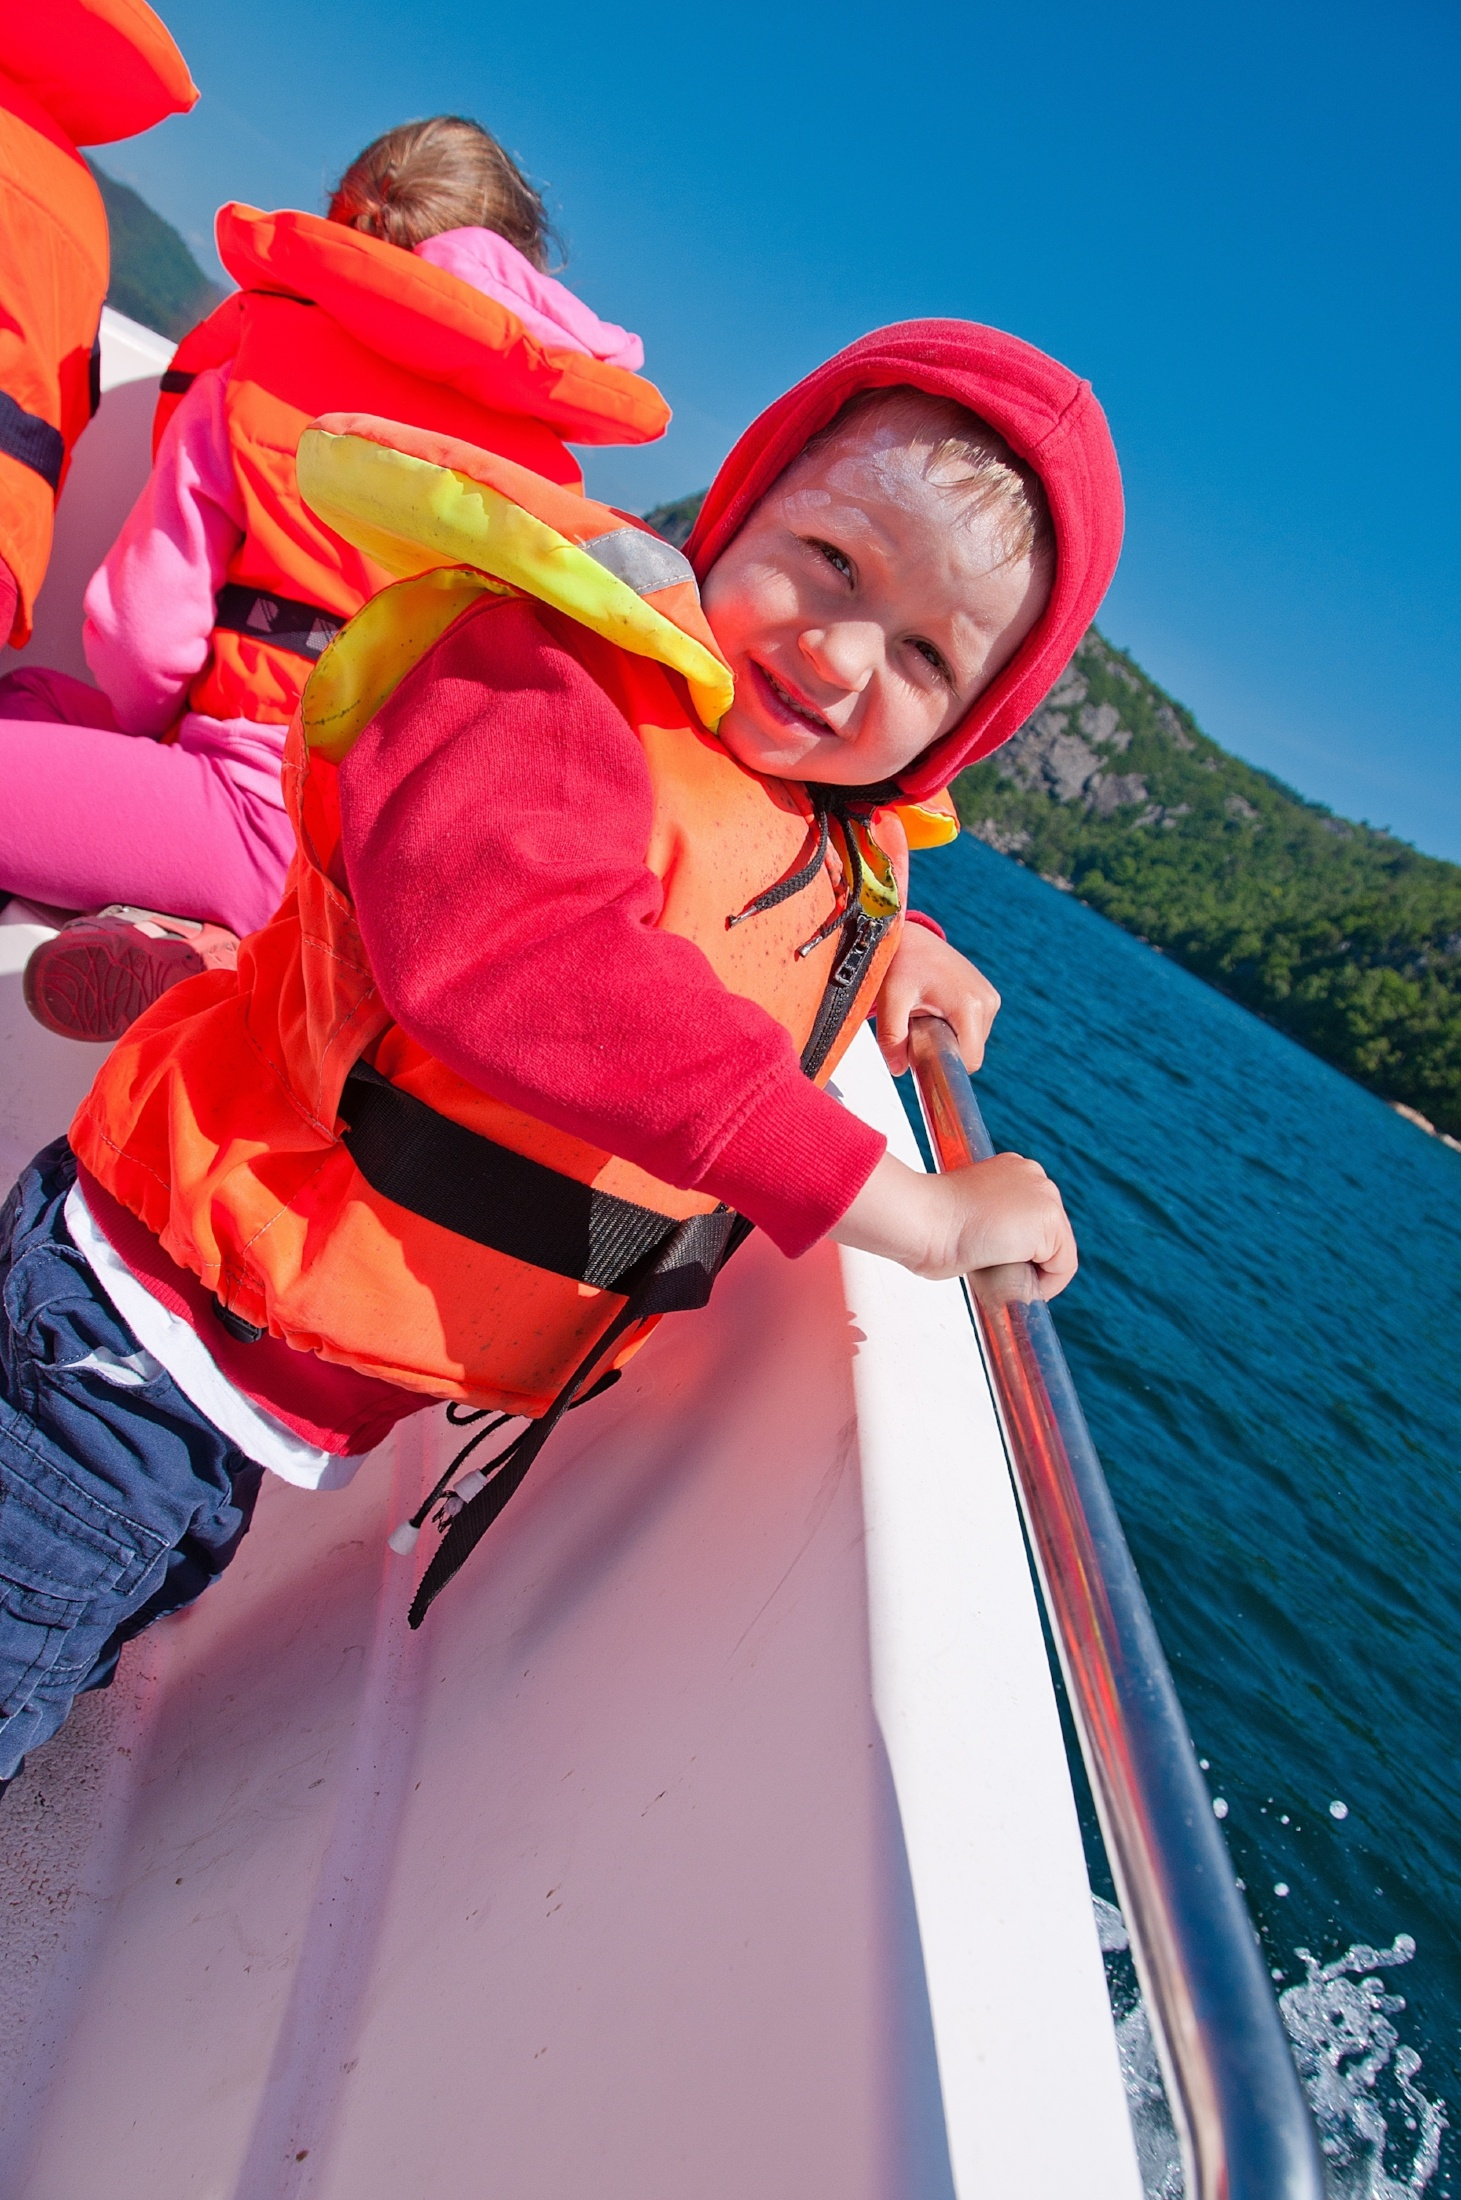 8 Places You Should Take Your Grandkids with Your Boat in Sarasota This Summer